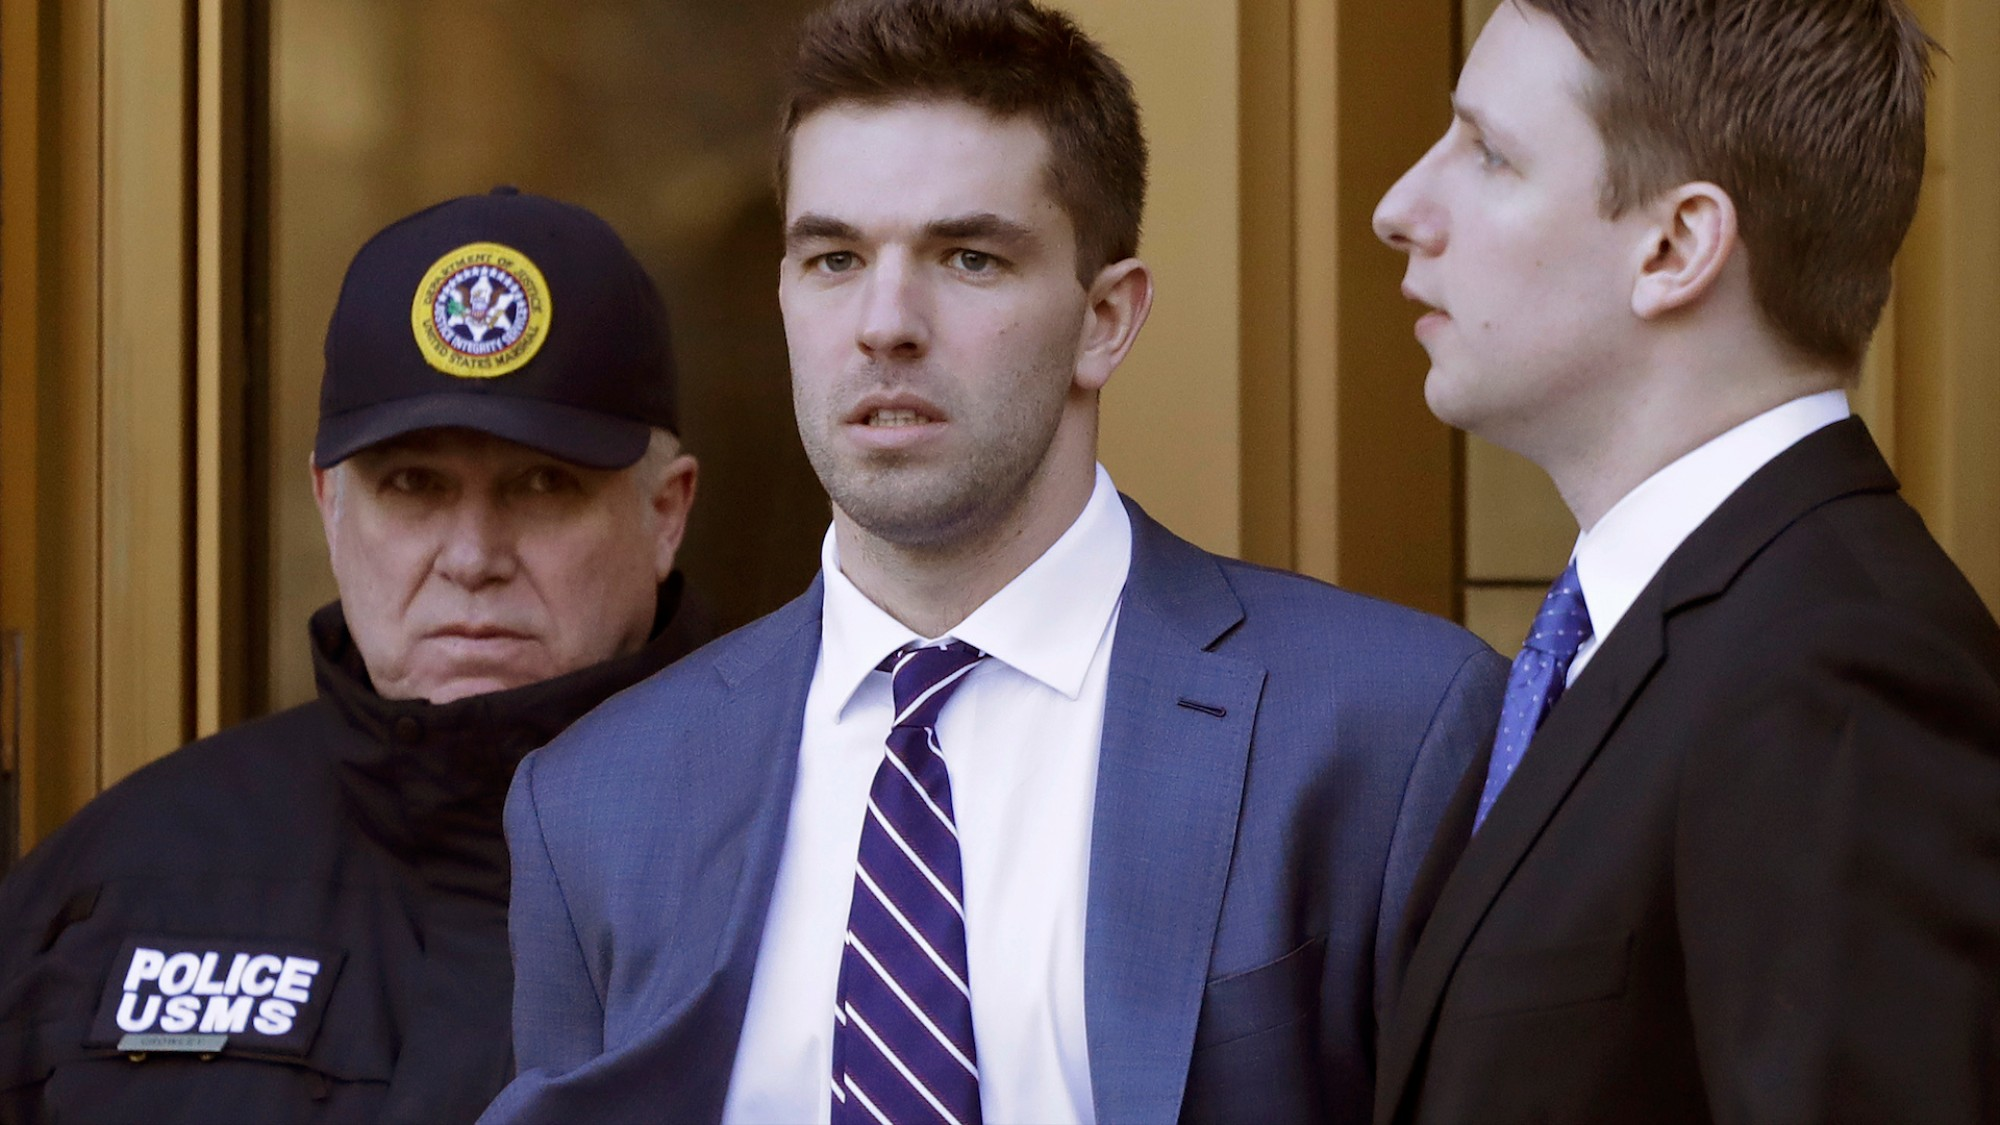 BREAKING: Fyre Festival scammer Billy McFarland sentenced to